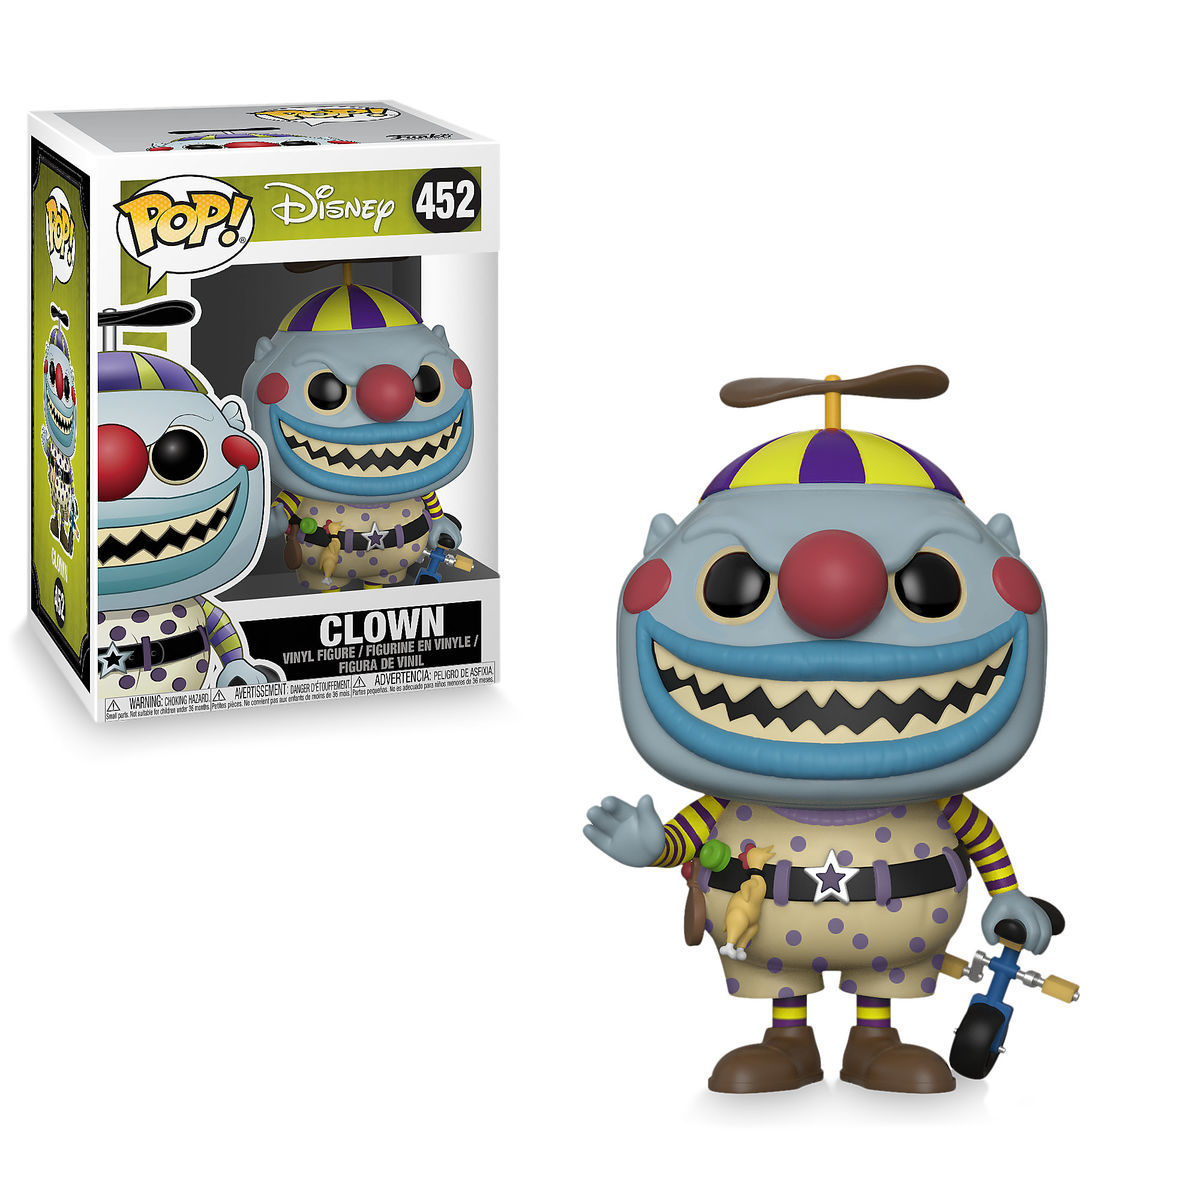 Clown Pop! Vinyl Figure by Funko - The Nightmare Before Christmas ...